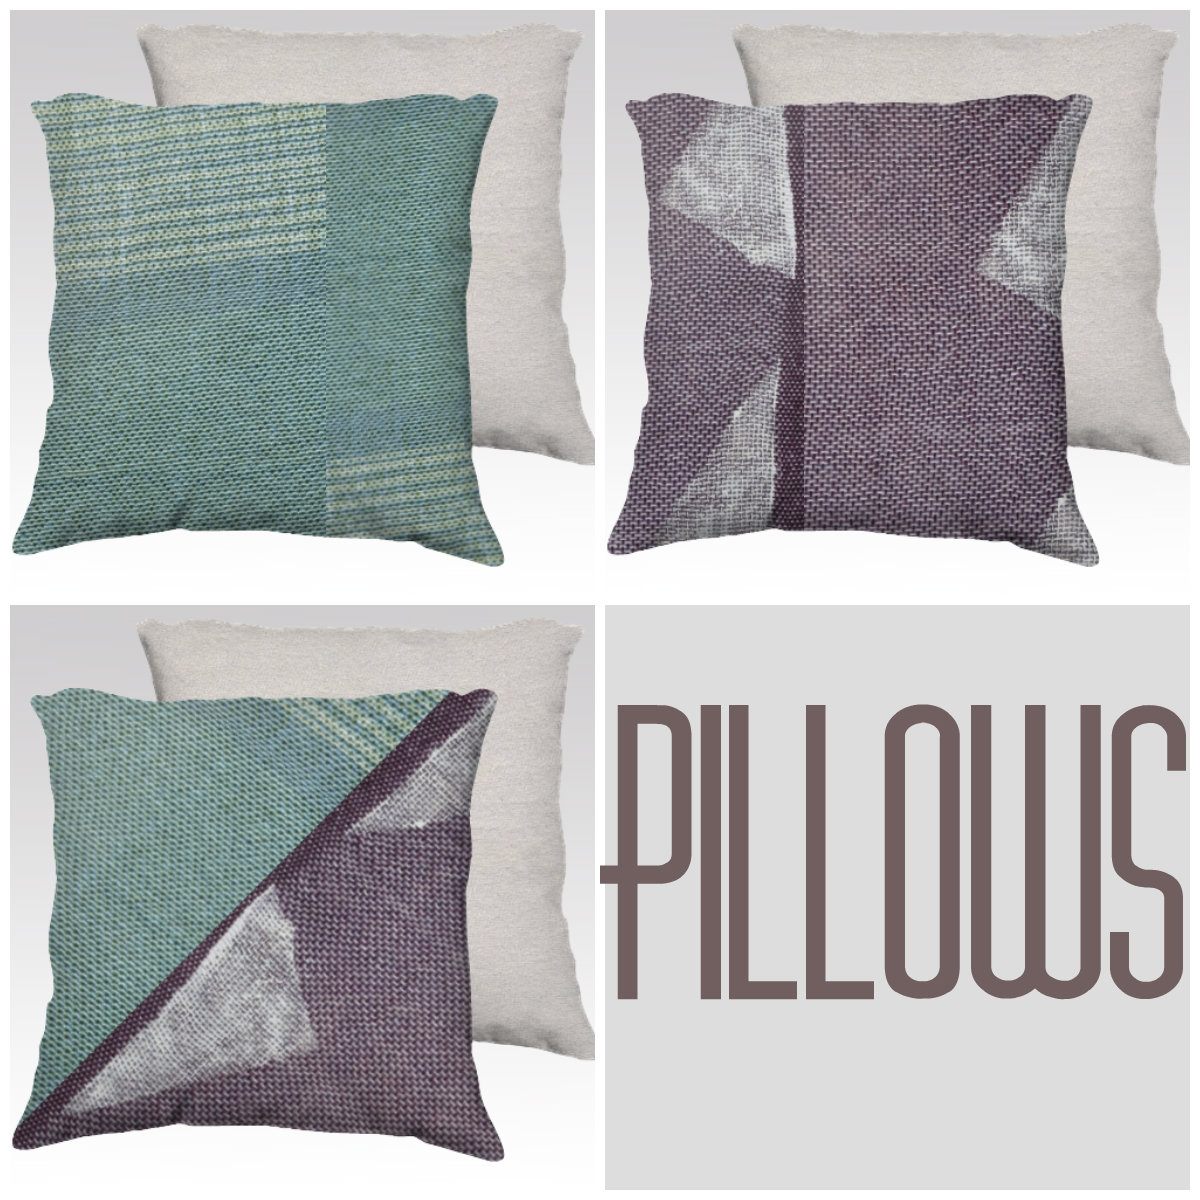 pillows by amber kane